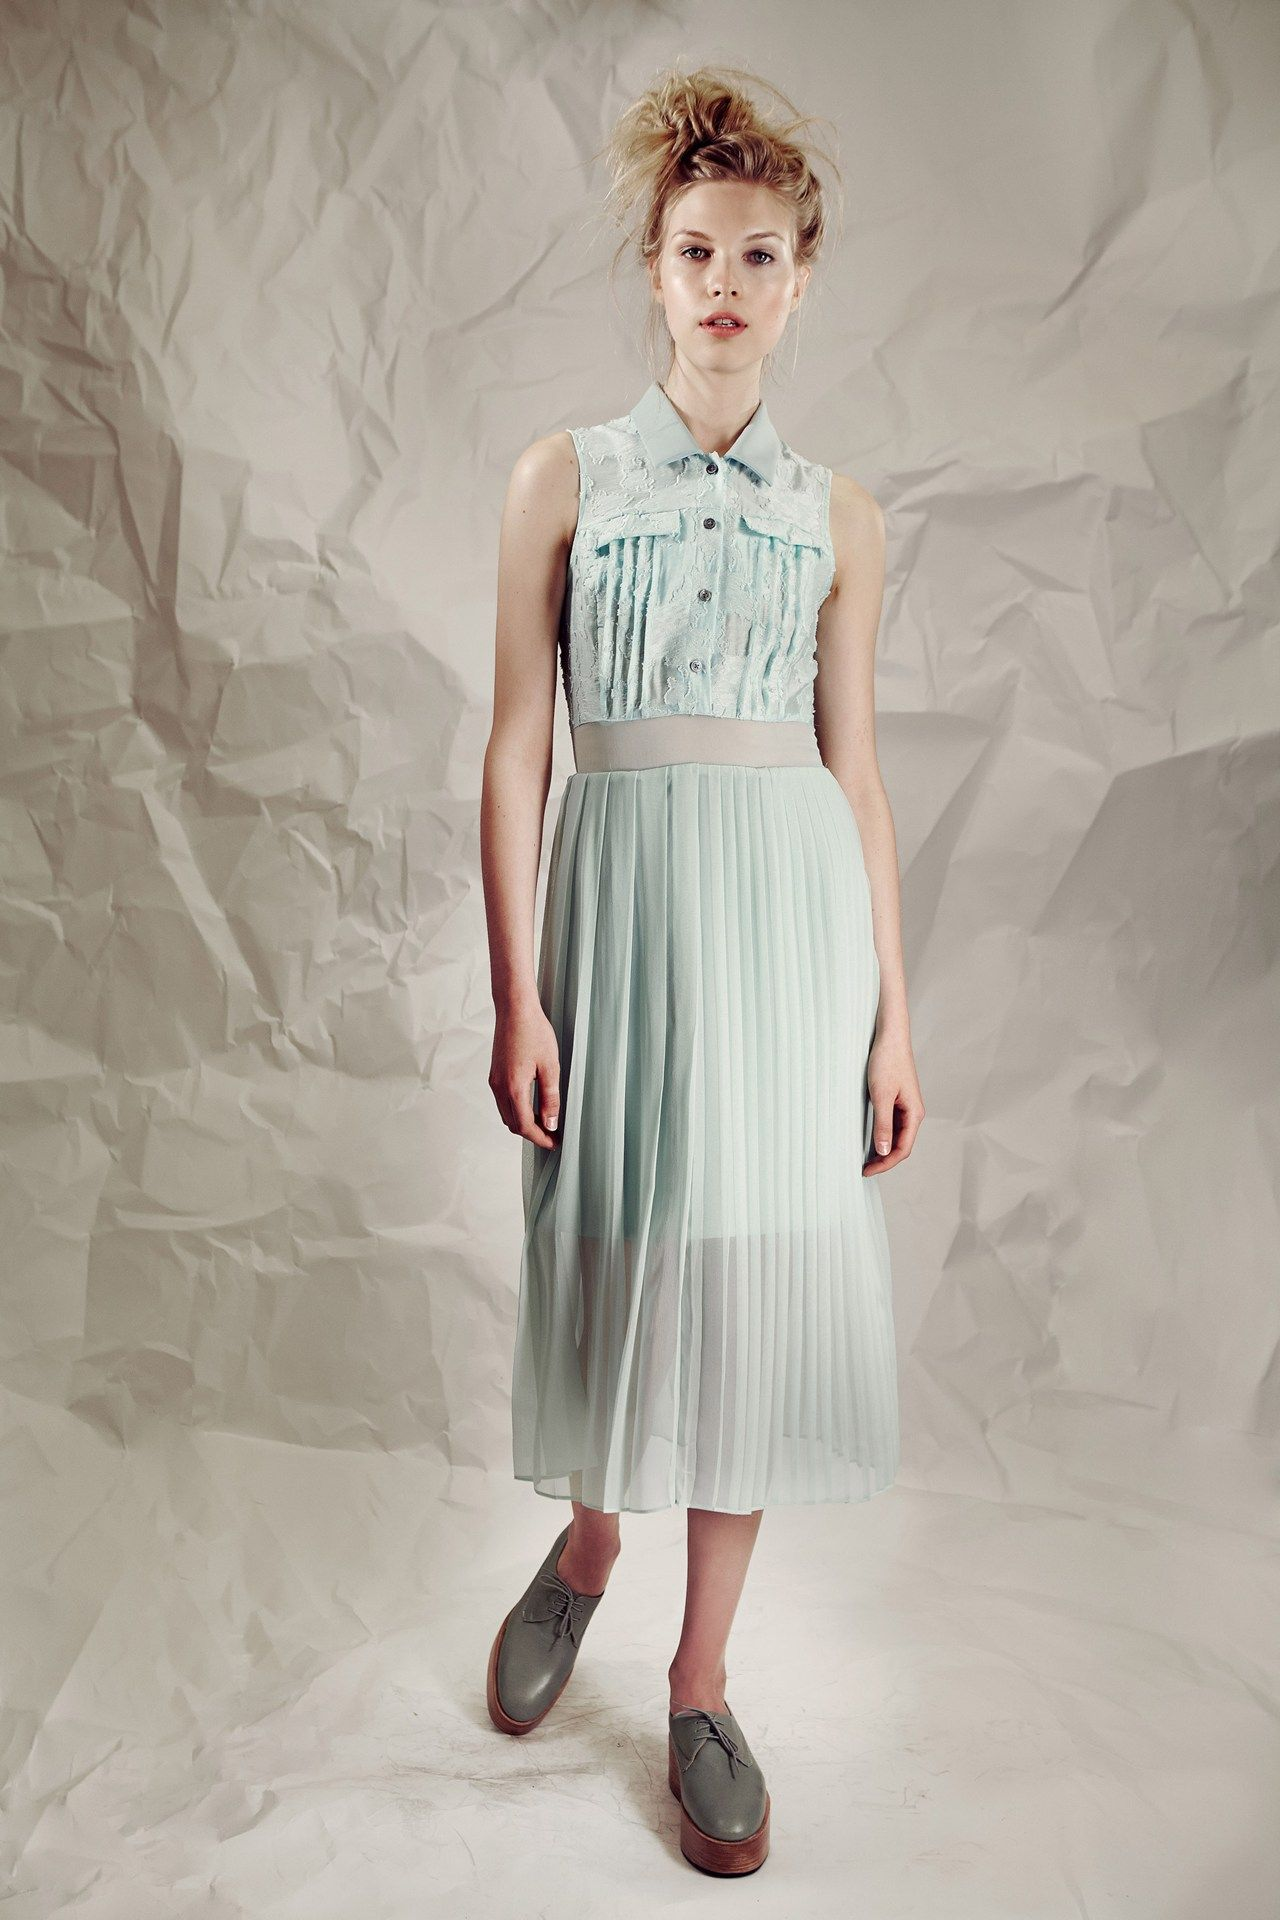 Timo Weiland, pre-spring/summer 2015